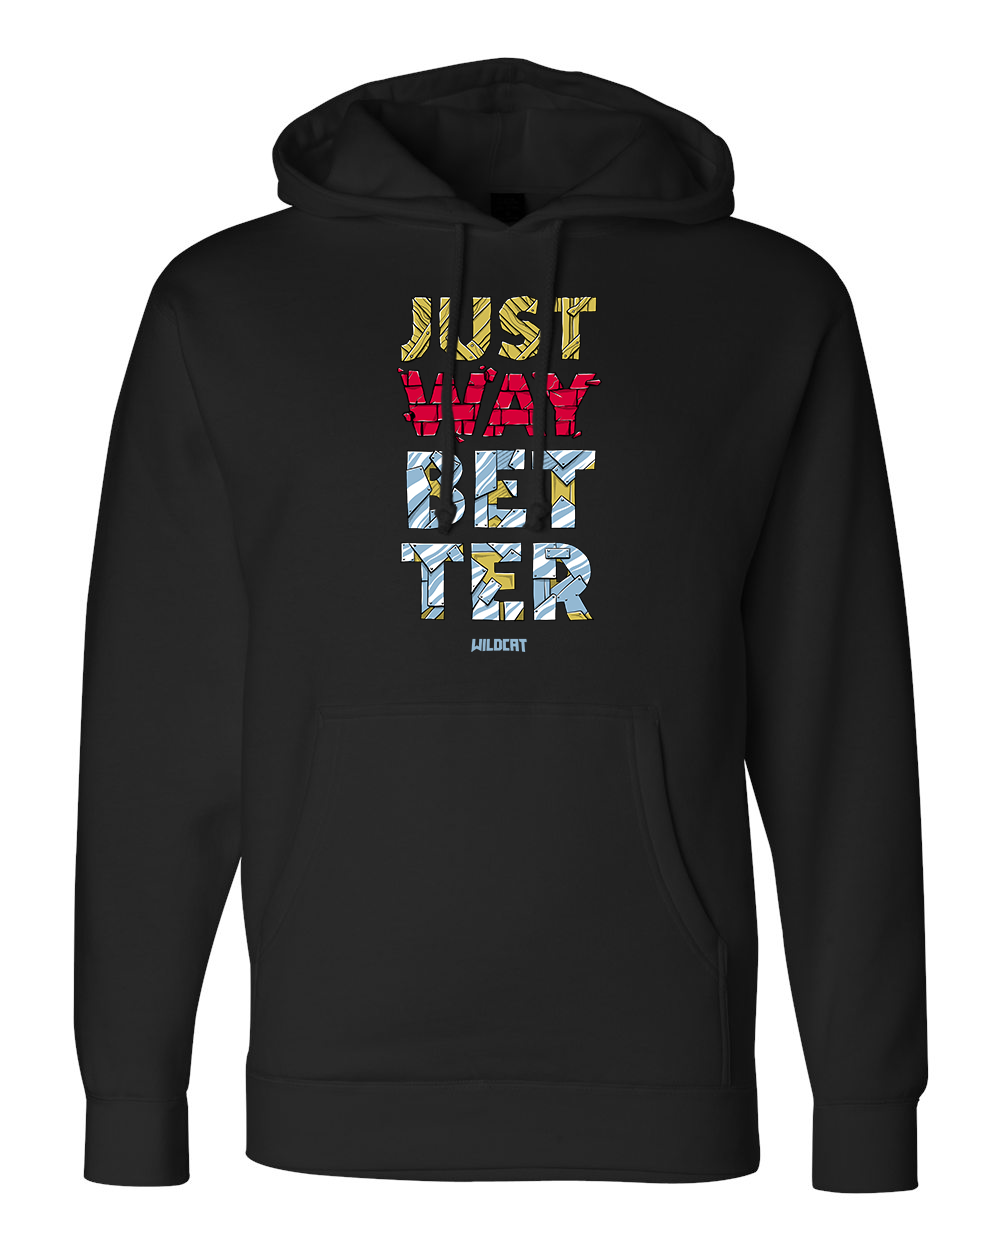 Just Way Better Hoodie